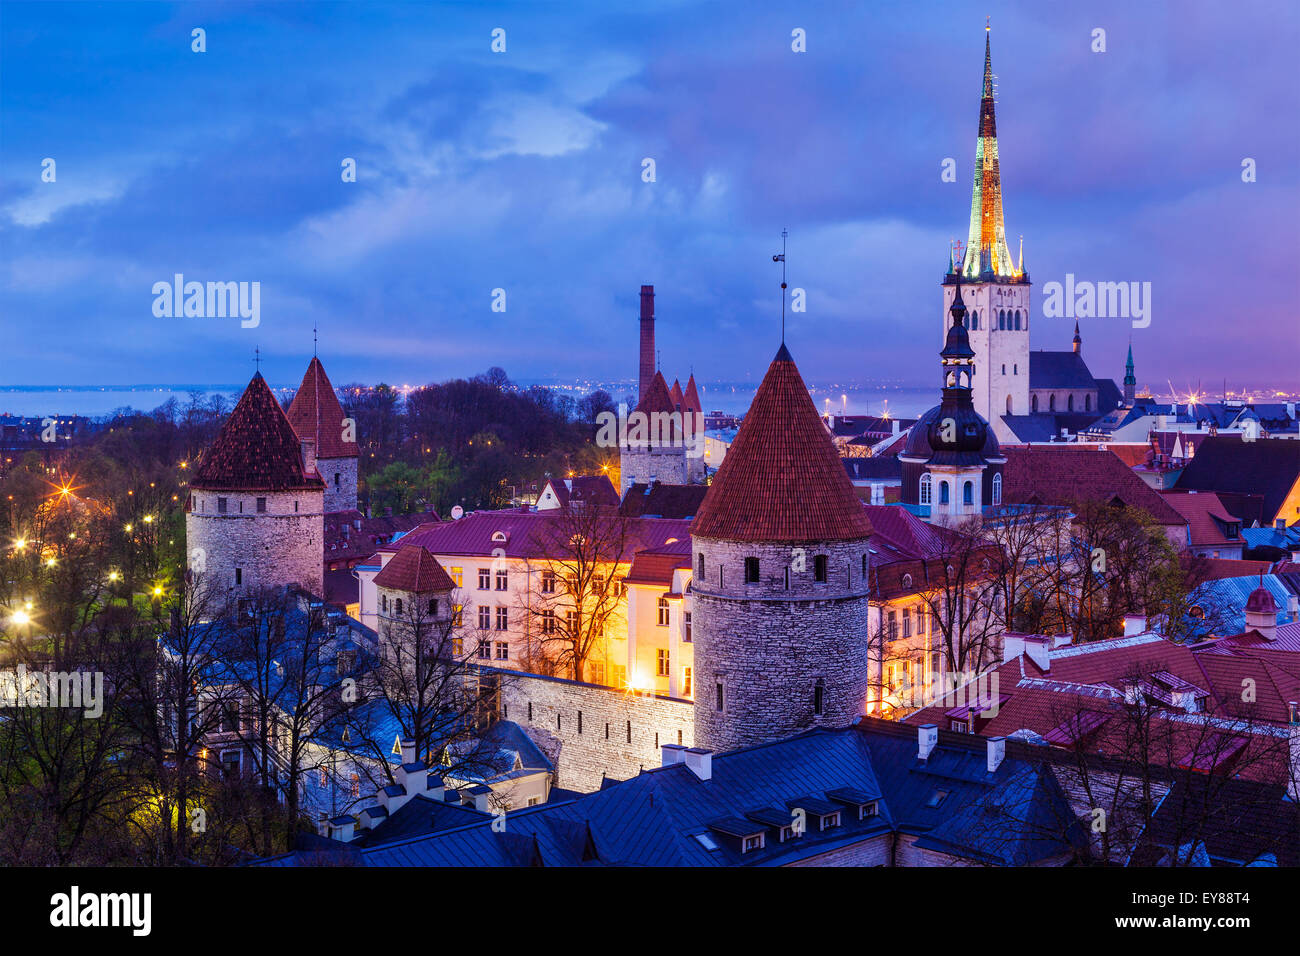 Aerial view of Tallinn Medieval Old Town illuminated in night, Estonia - Stock Image